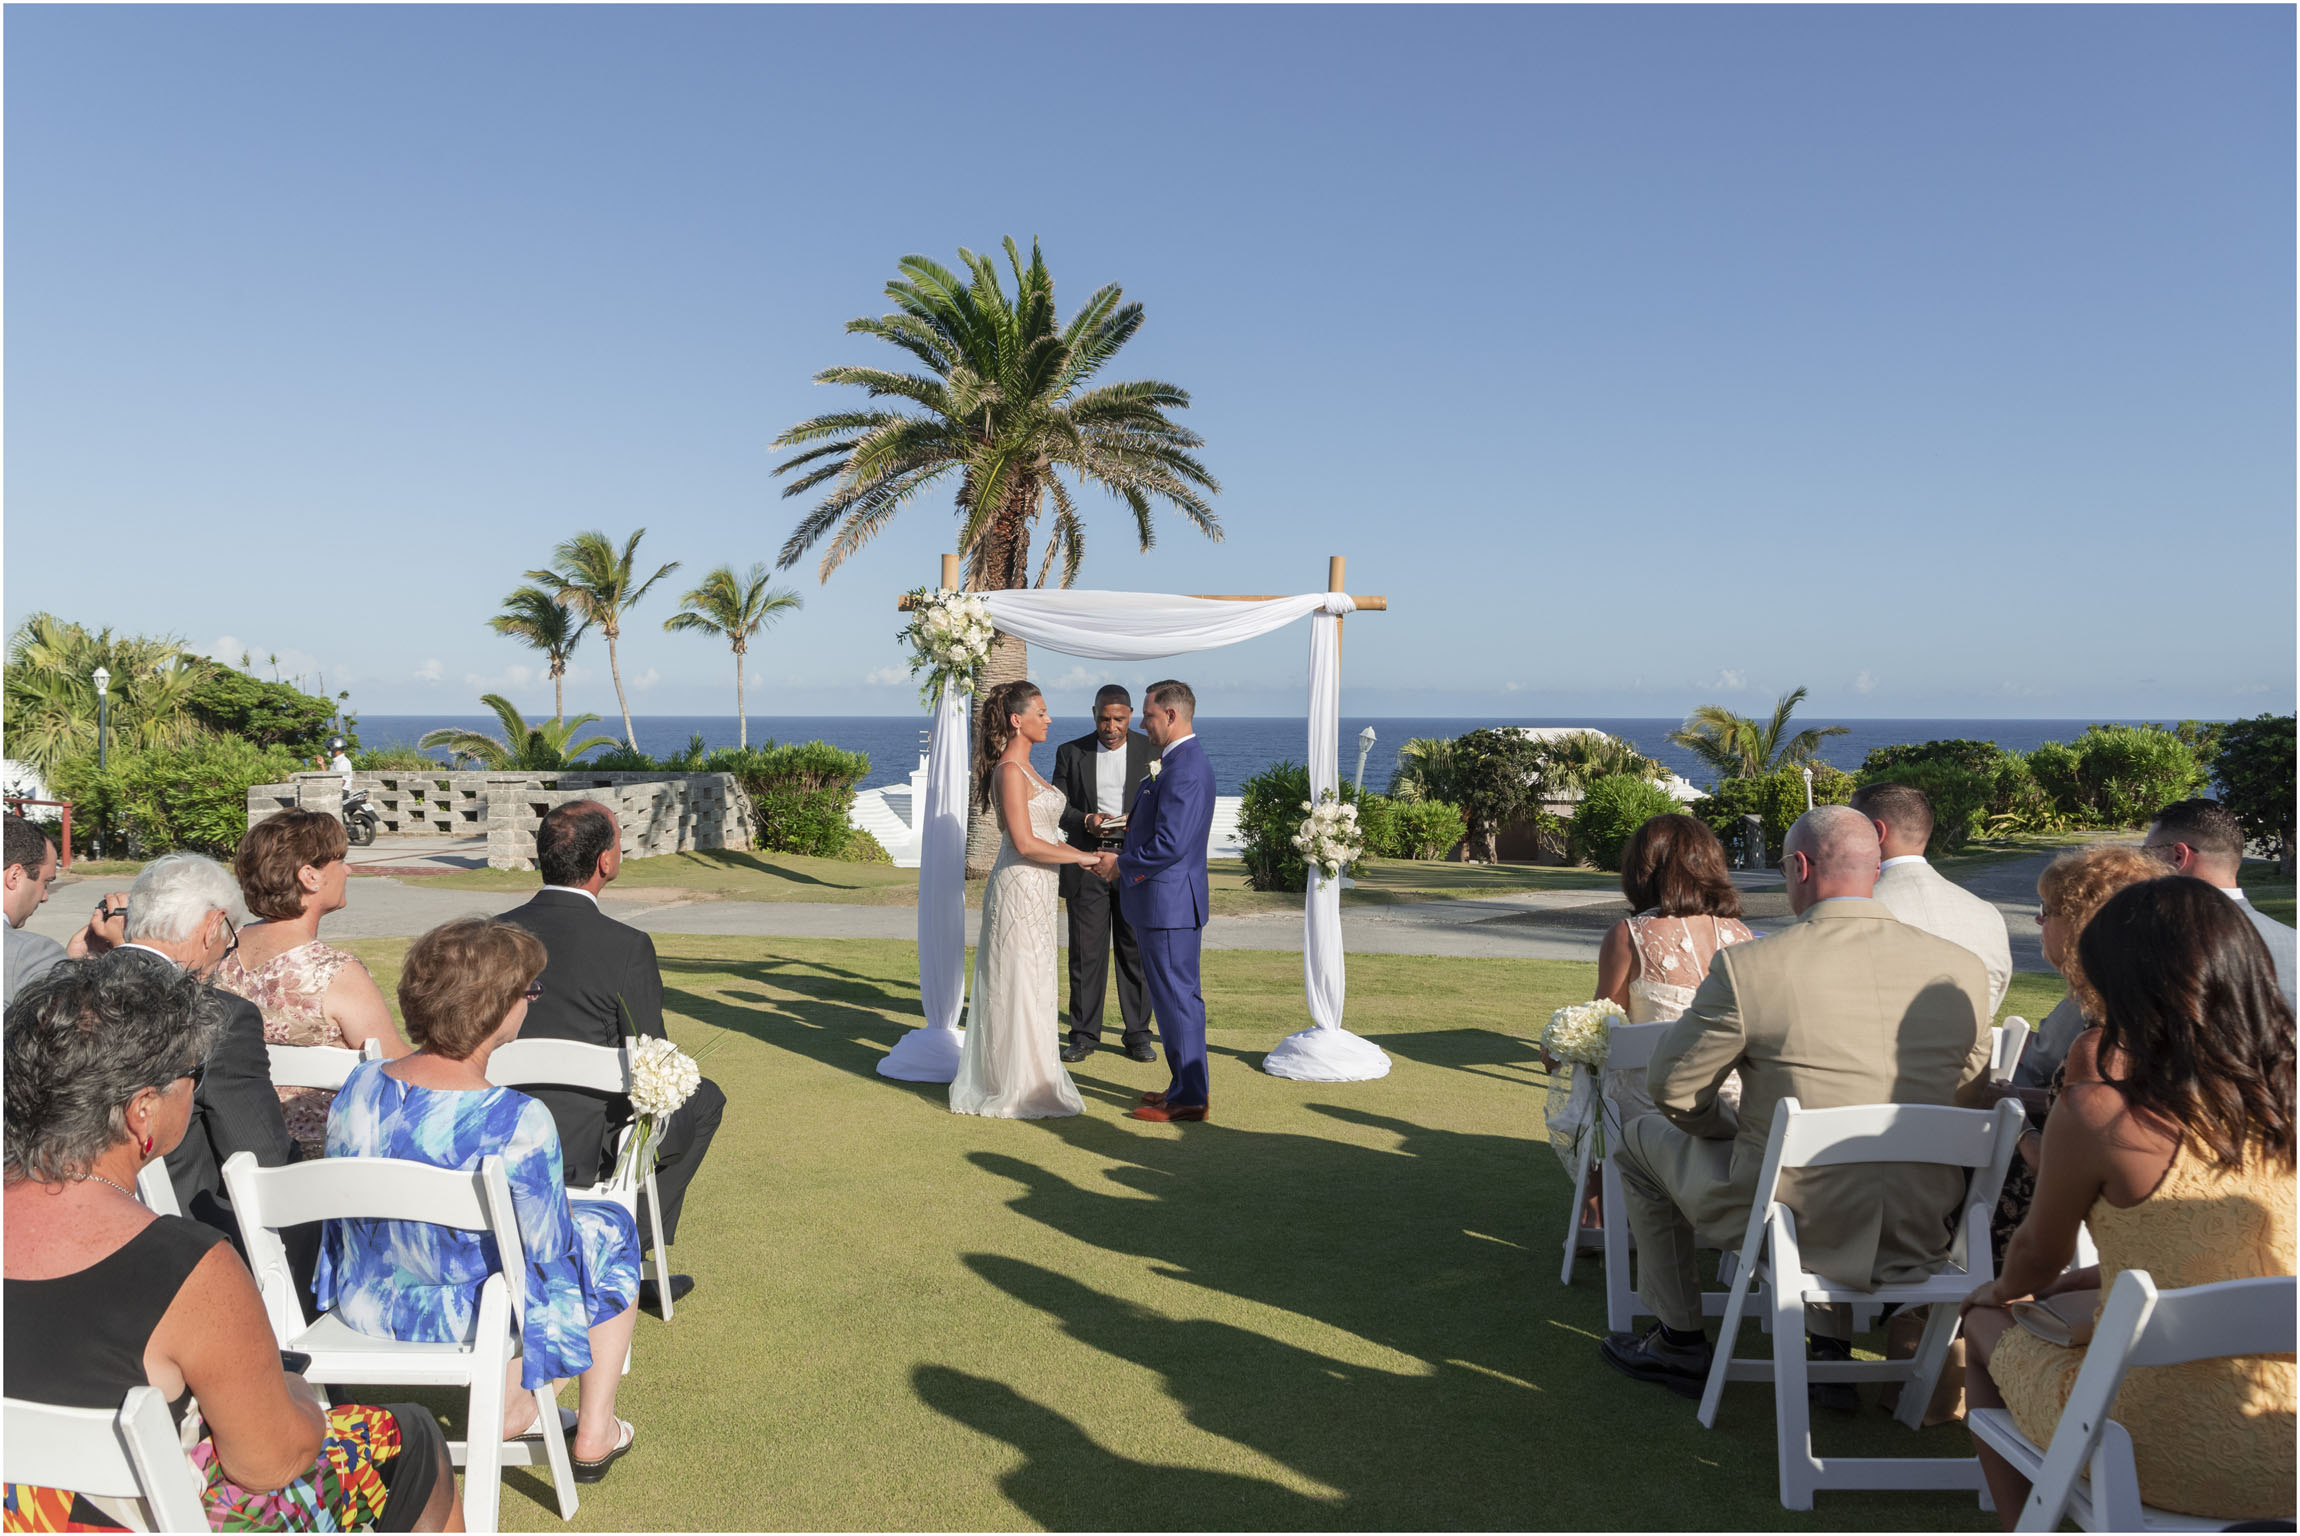 ©FianderFoto_Catherine_Kenny_Coral Beach Wedding_162.jpg